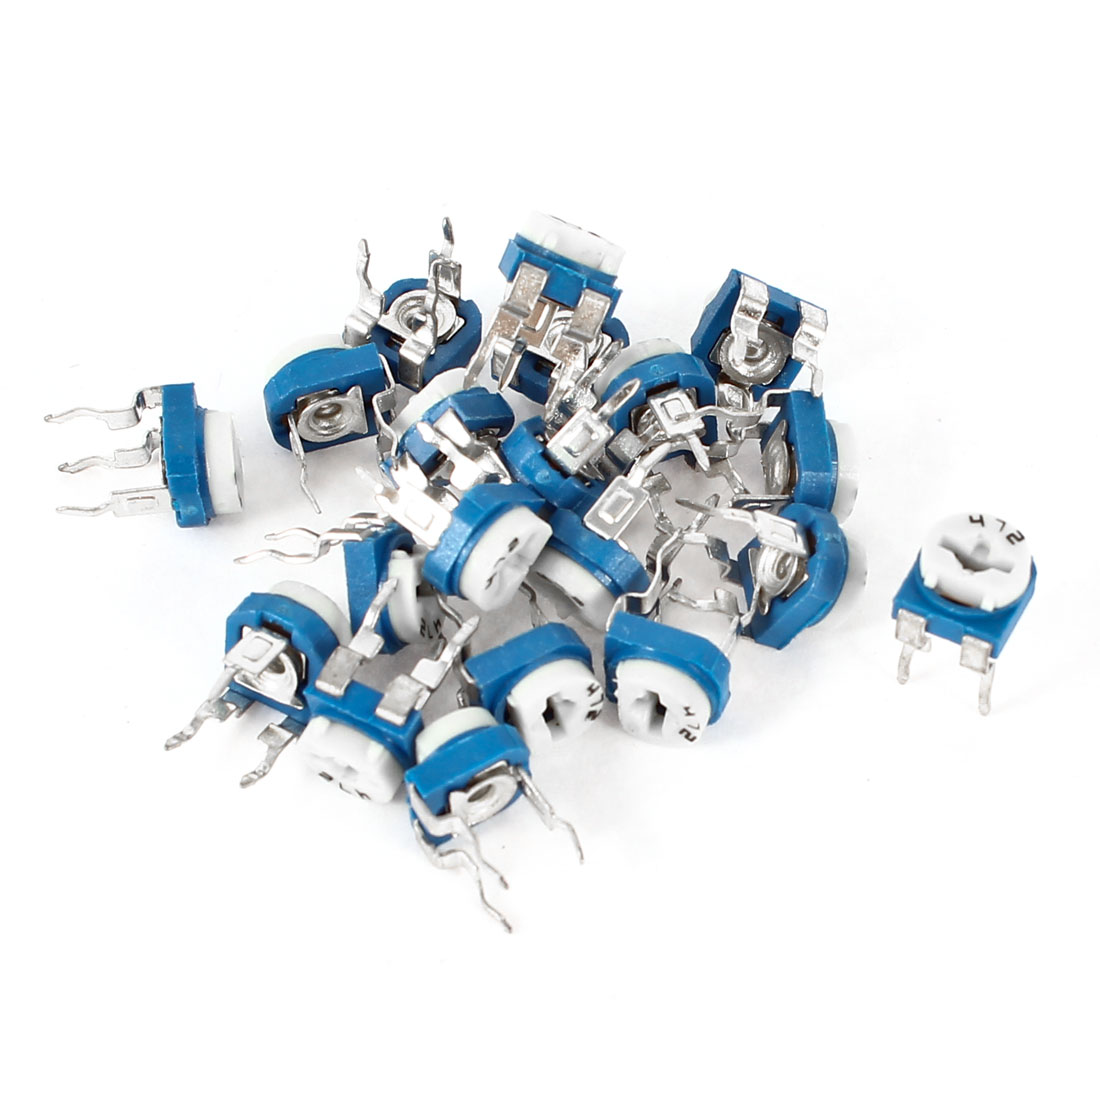 20pcs 472 4.7K Ohm Variable Resistor Horizontal Trimmer Potentiometers